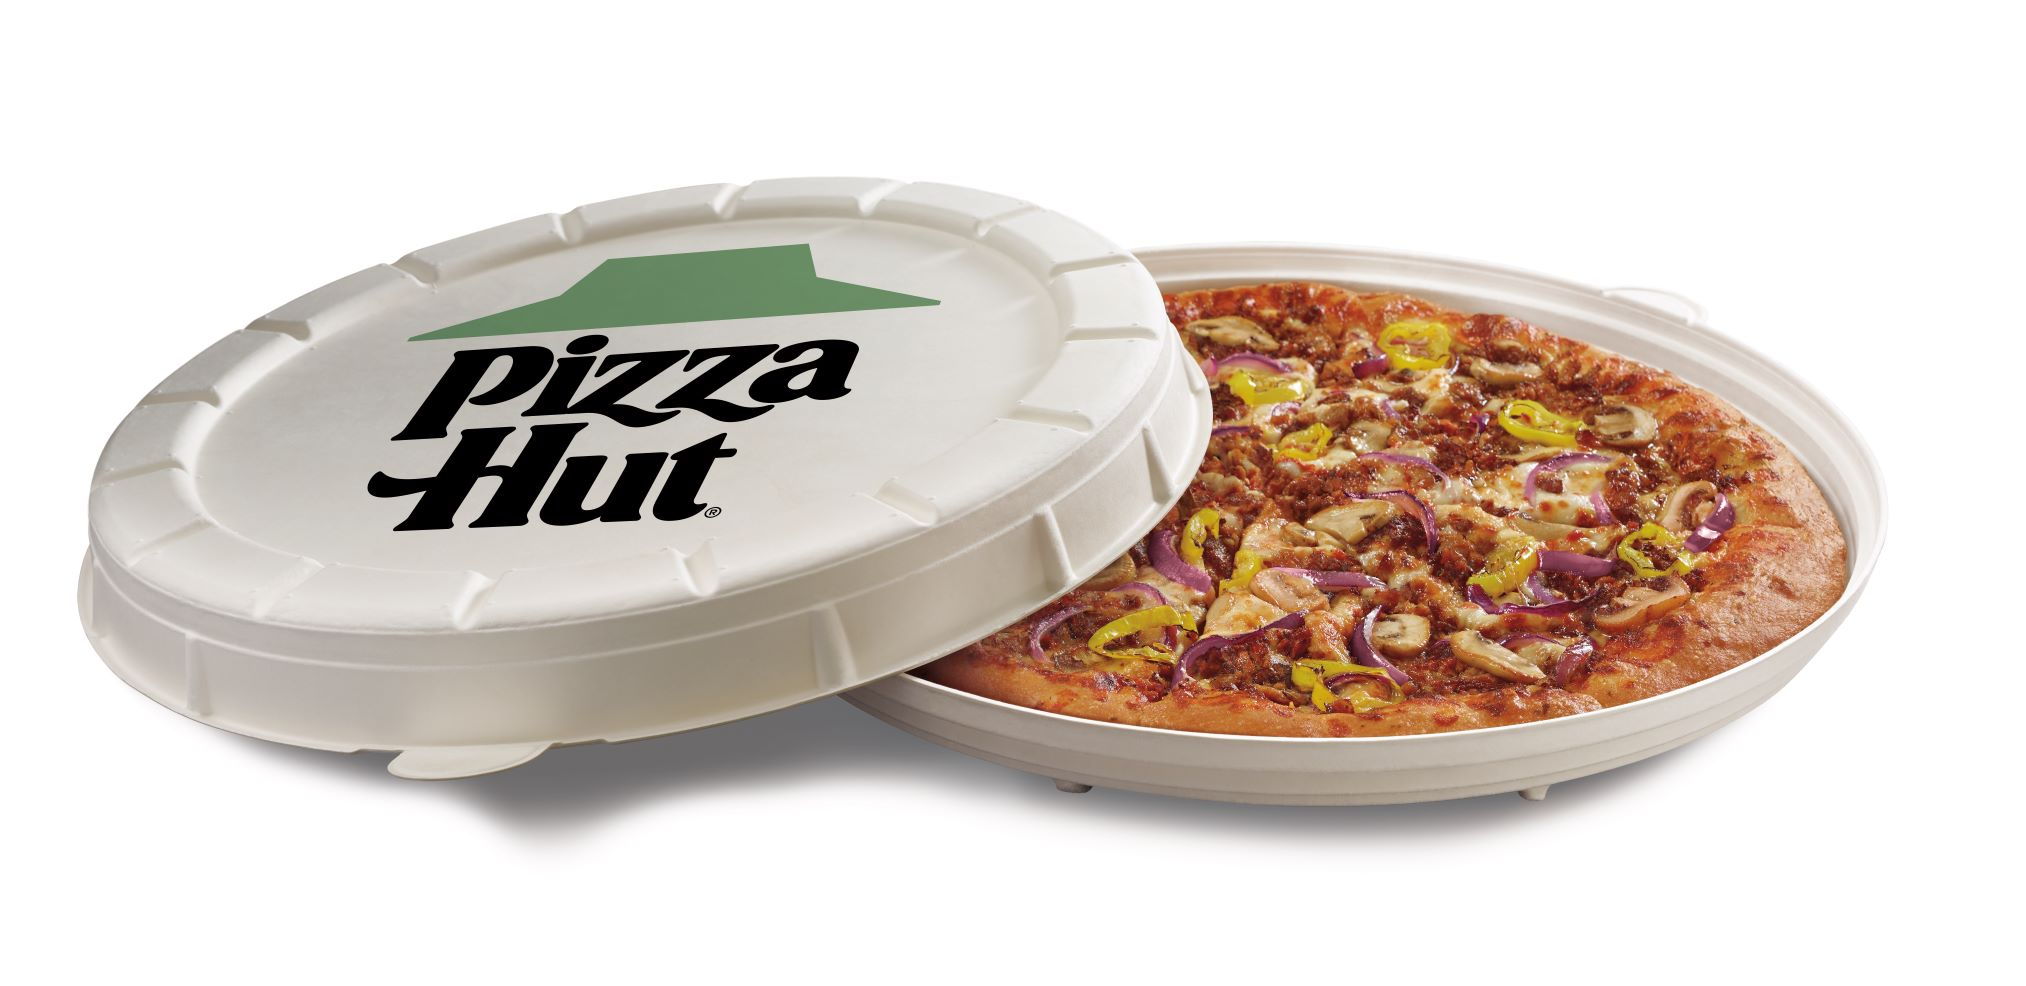 Pizza Hut partners with Kellogg's to test 'Incogmeato' plant-based sausage